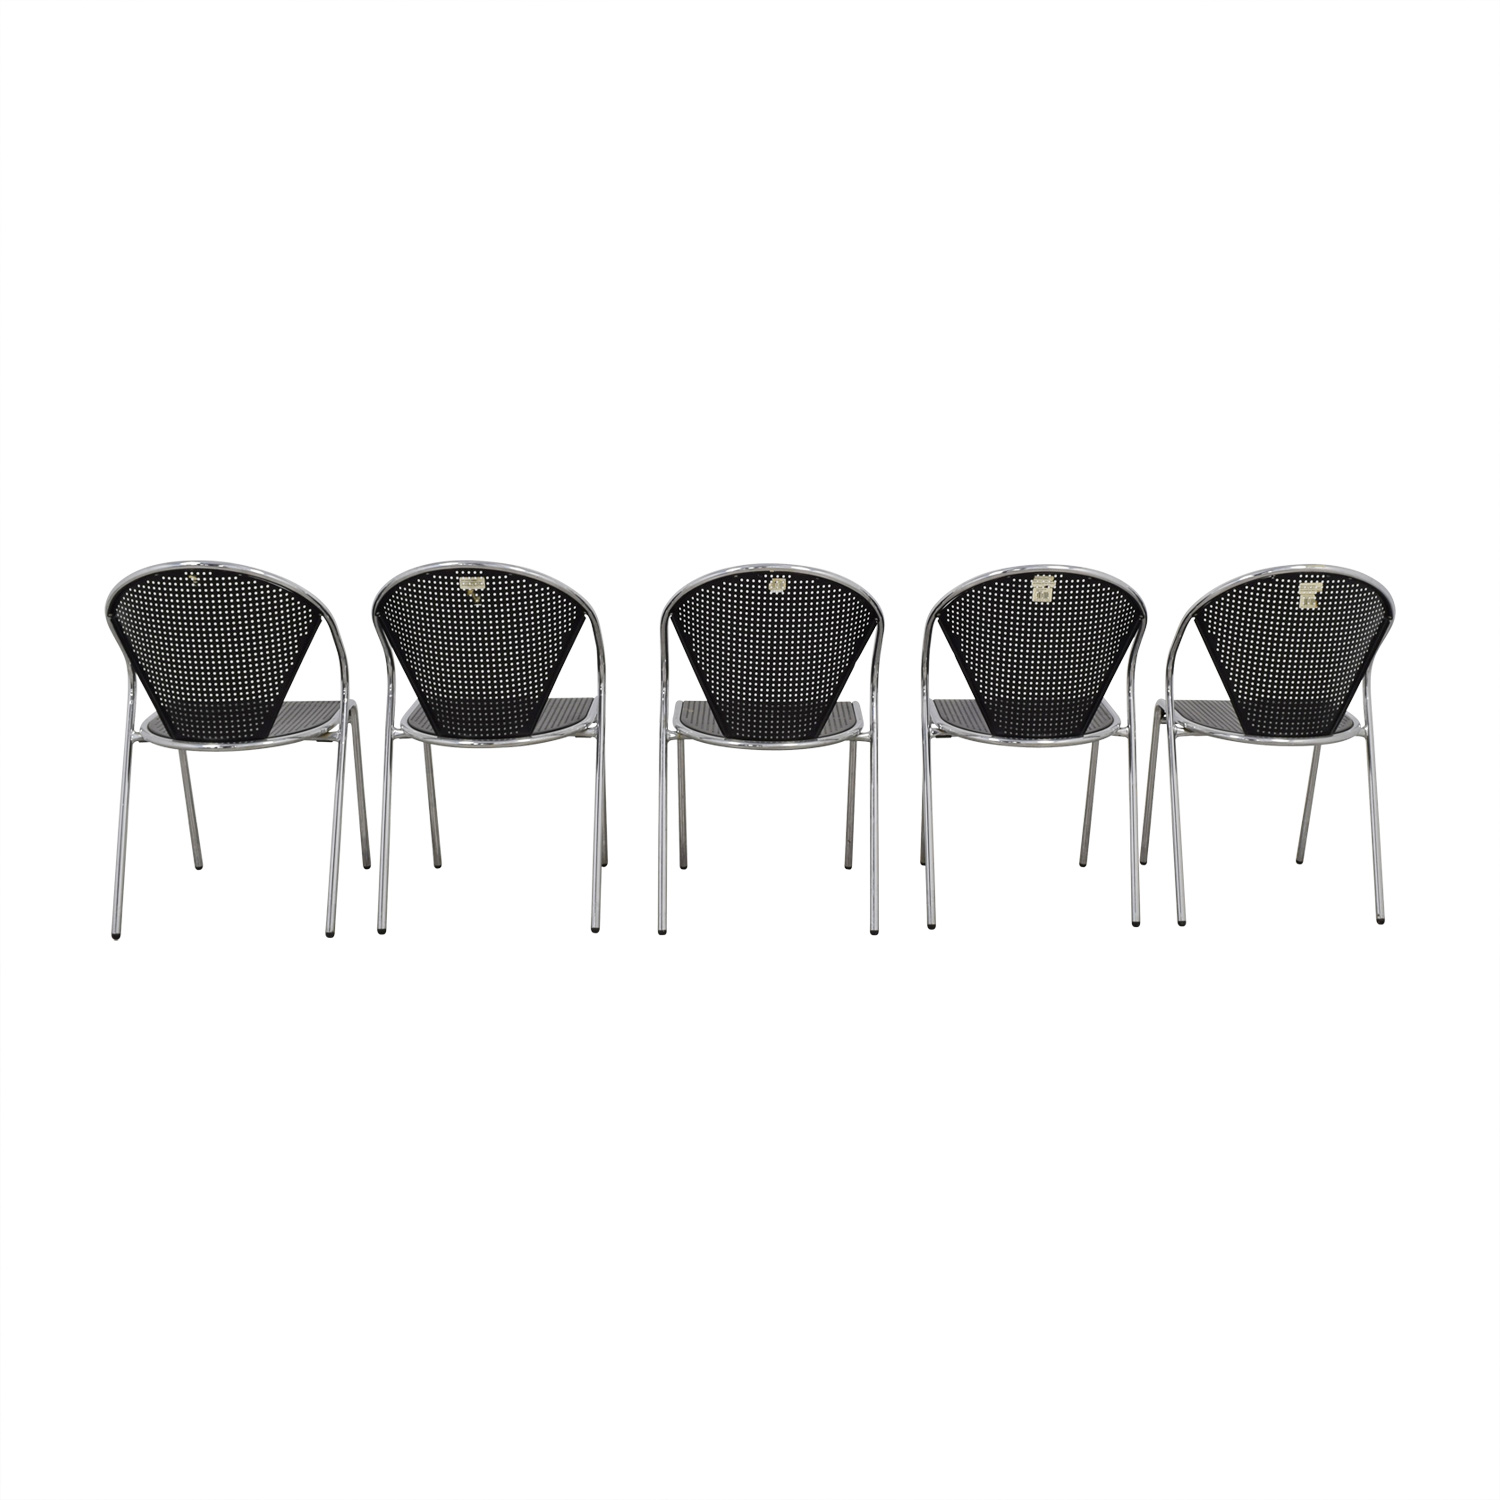 Manhattan Home Design Manhattan Home Design Protech Black Steel Stacking Chairs price